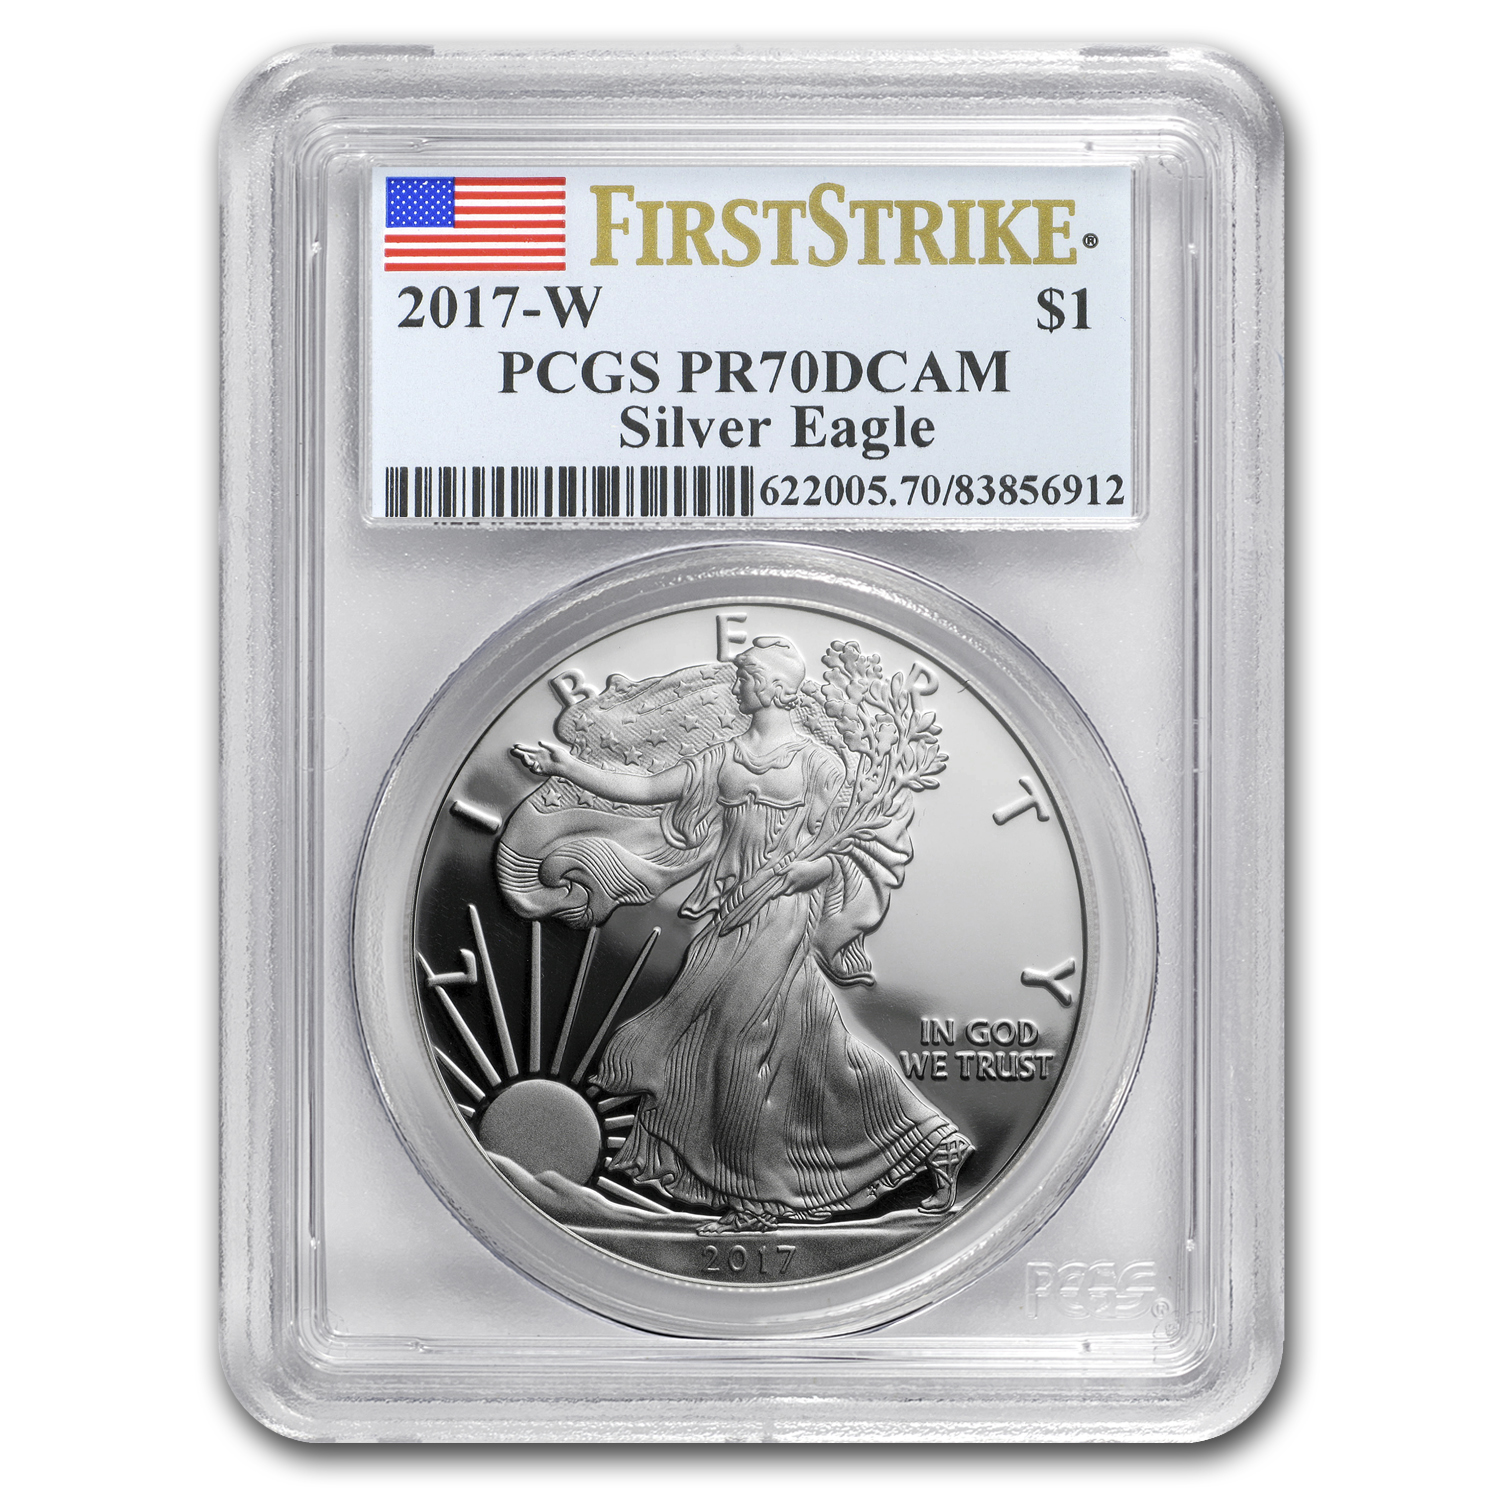 2017-W Proof Silver American Eagle PR-70 PCGS (First Strike)